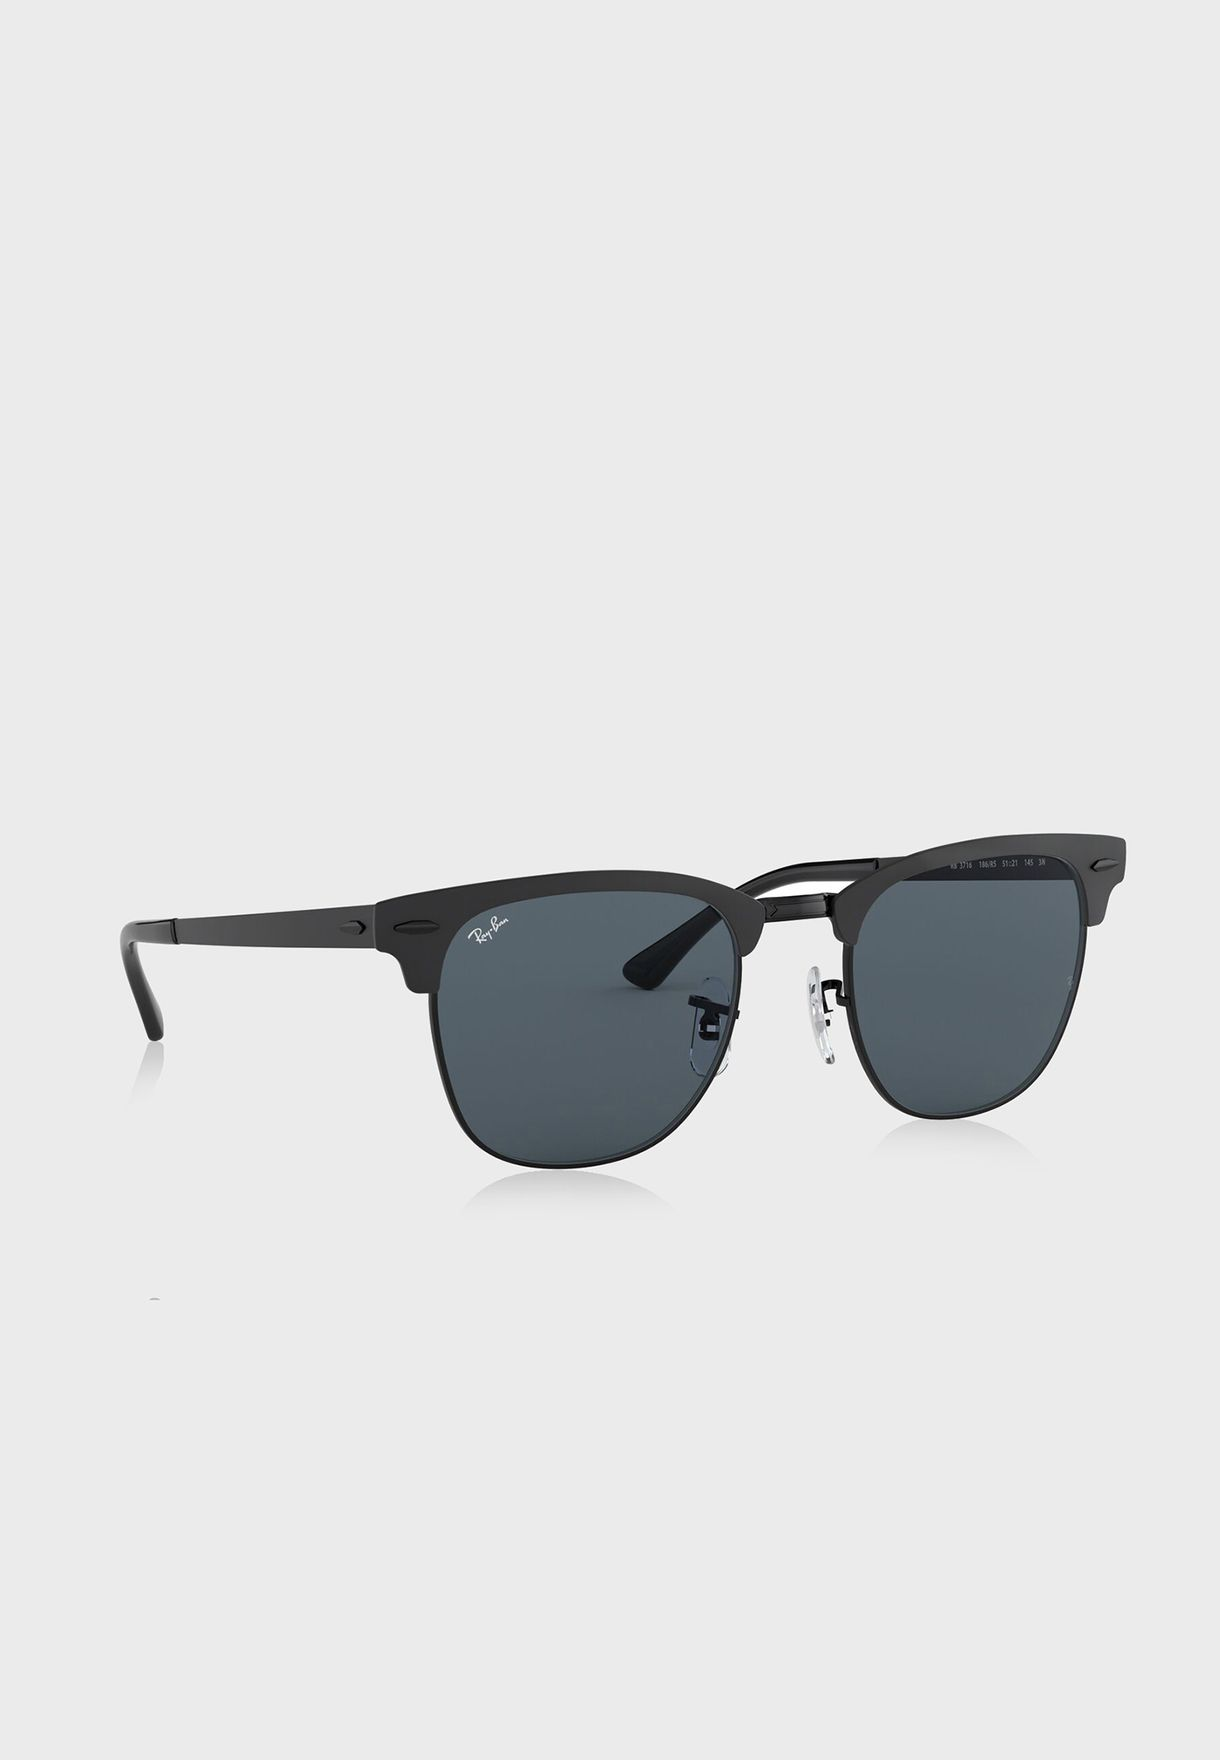 0RB3716 Clubmaster Sunglasses